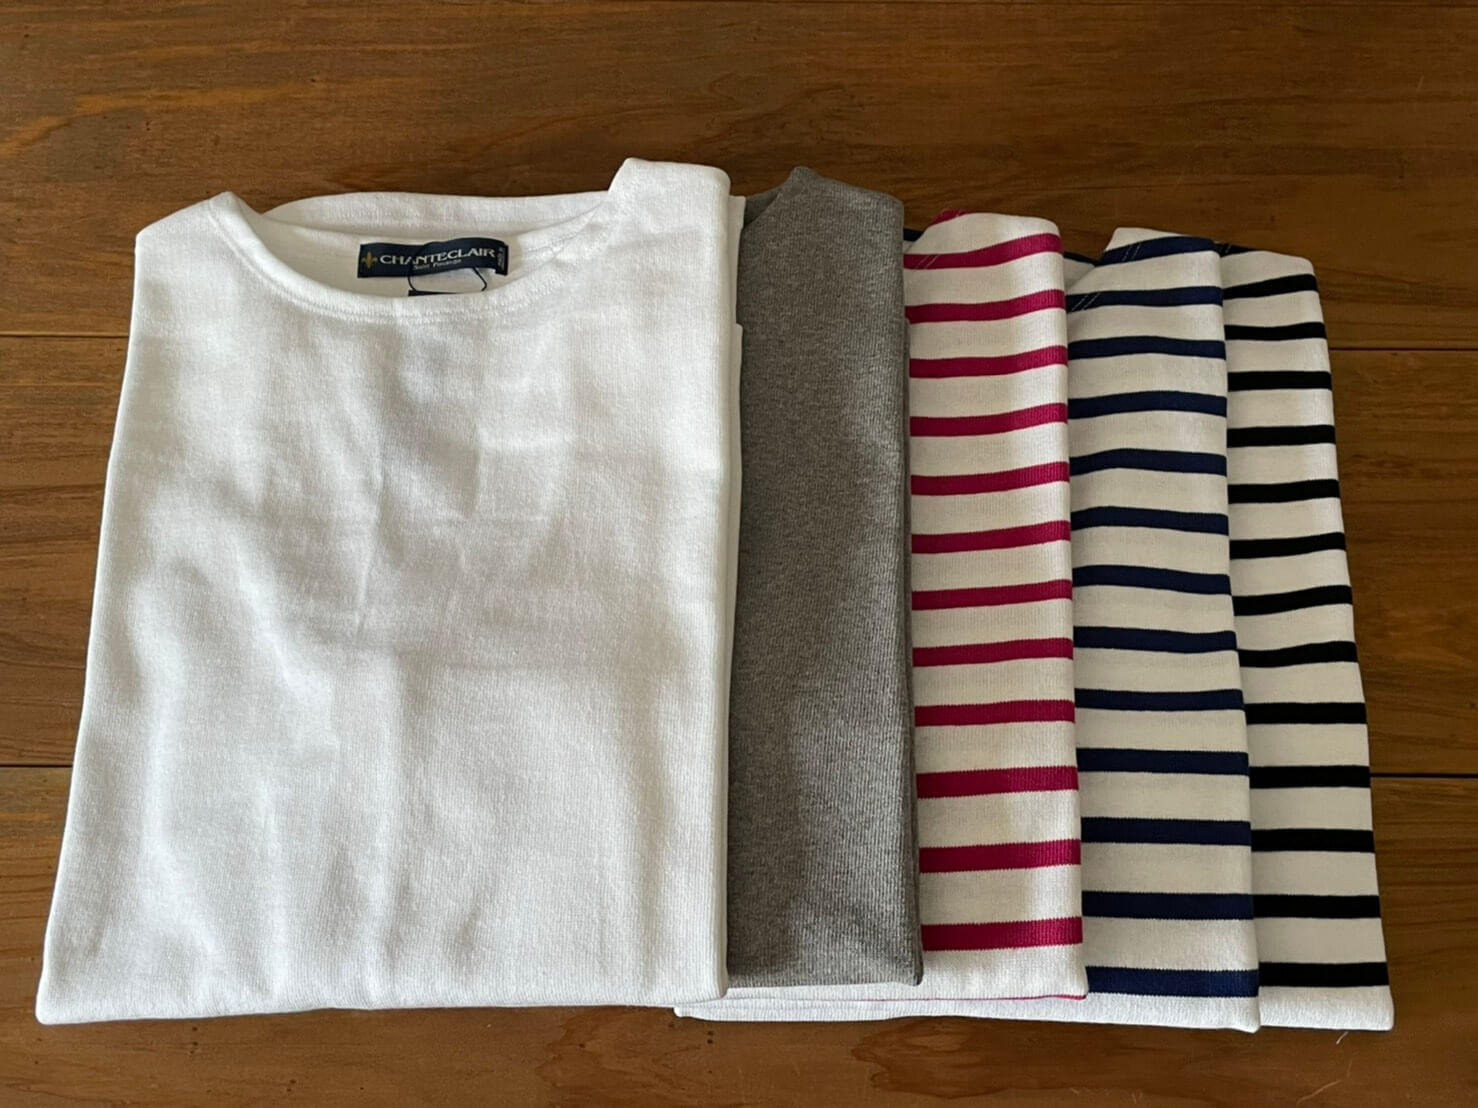 CHANTECLAIR Cut and sew